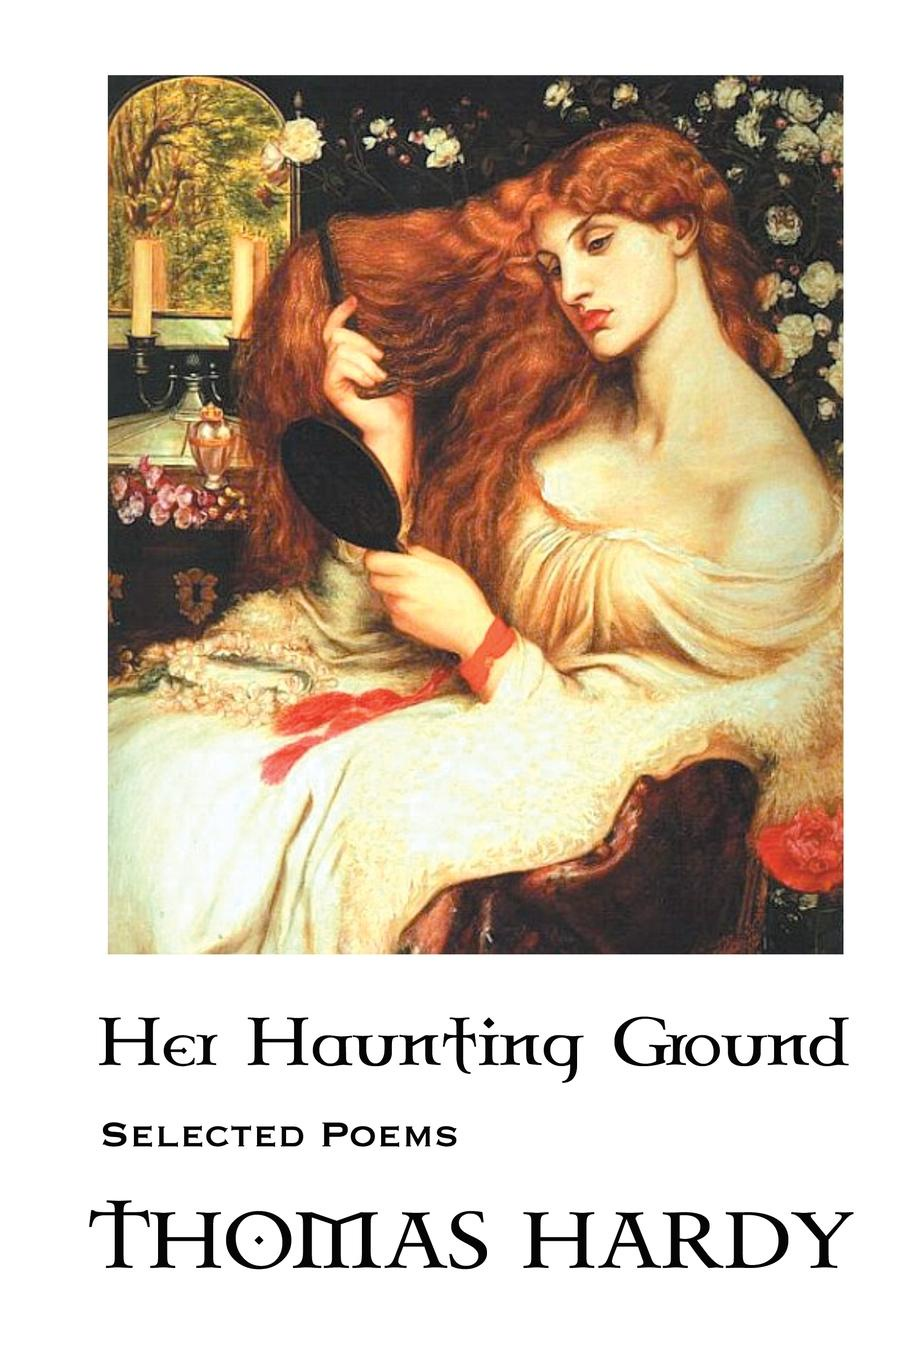 Thomas Hardy THOMAS HARDY. HER HAUNTING GROUND: SELECTED POEMS